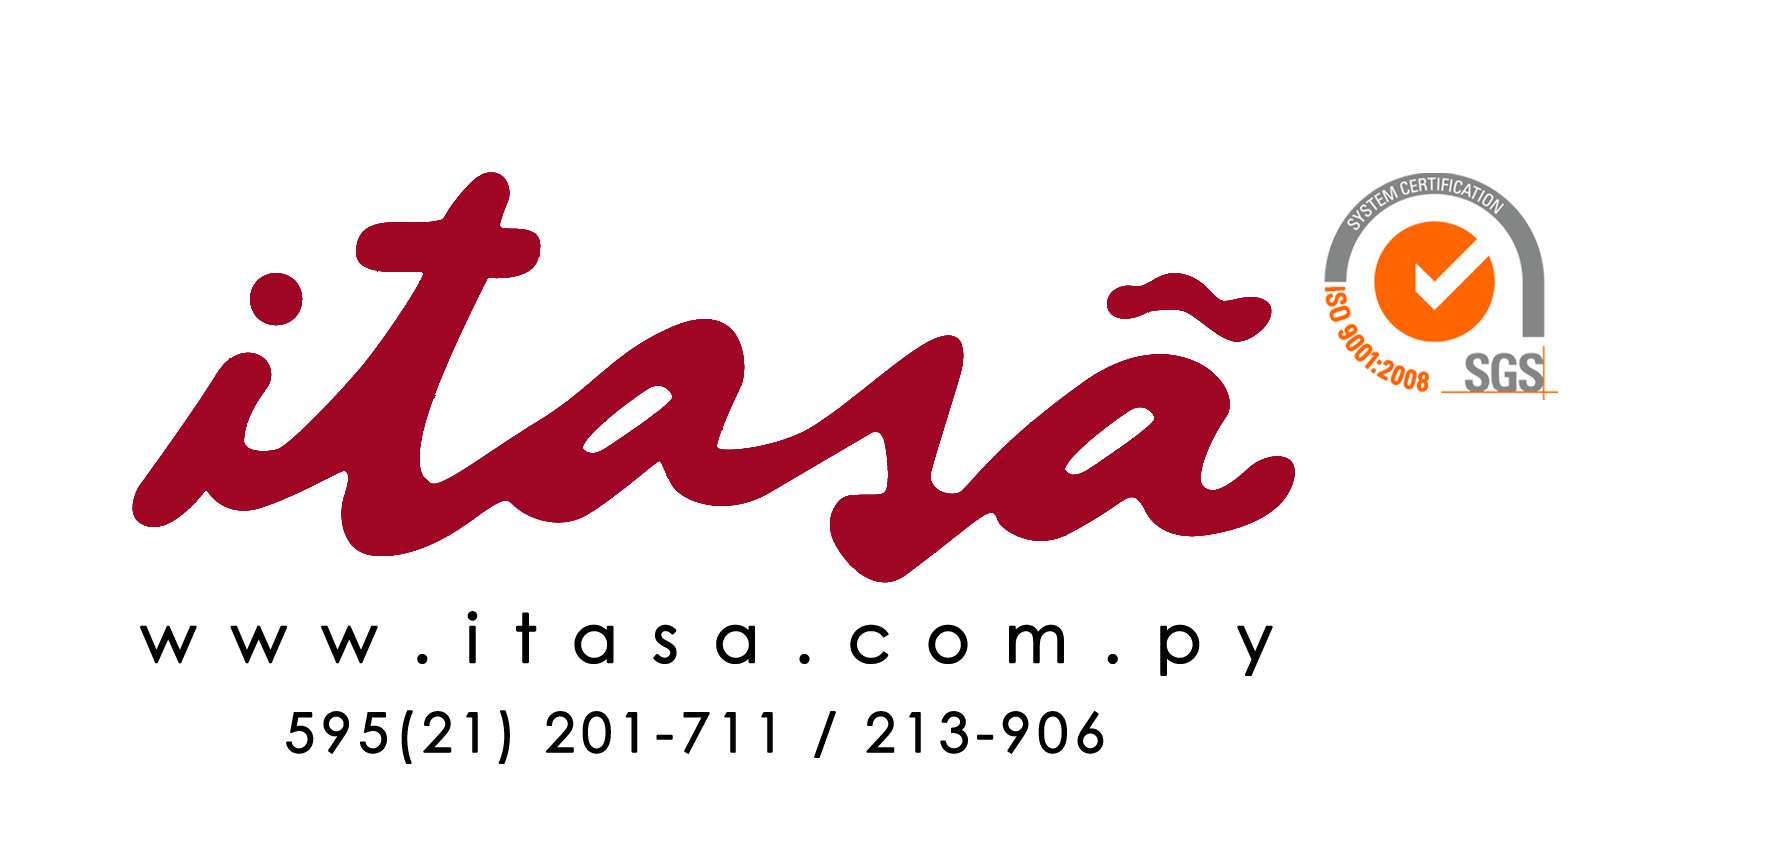 Itasa S.A.